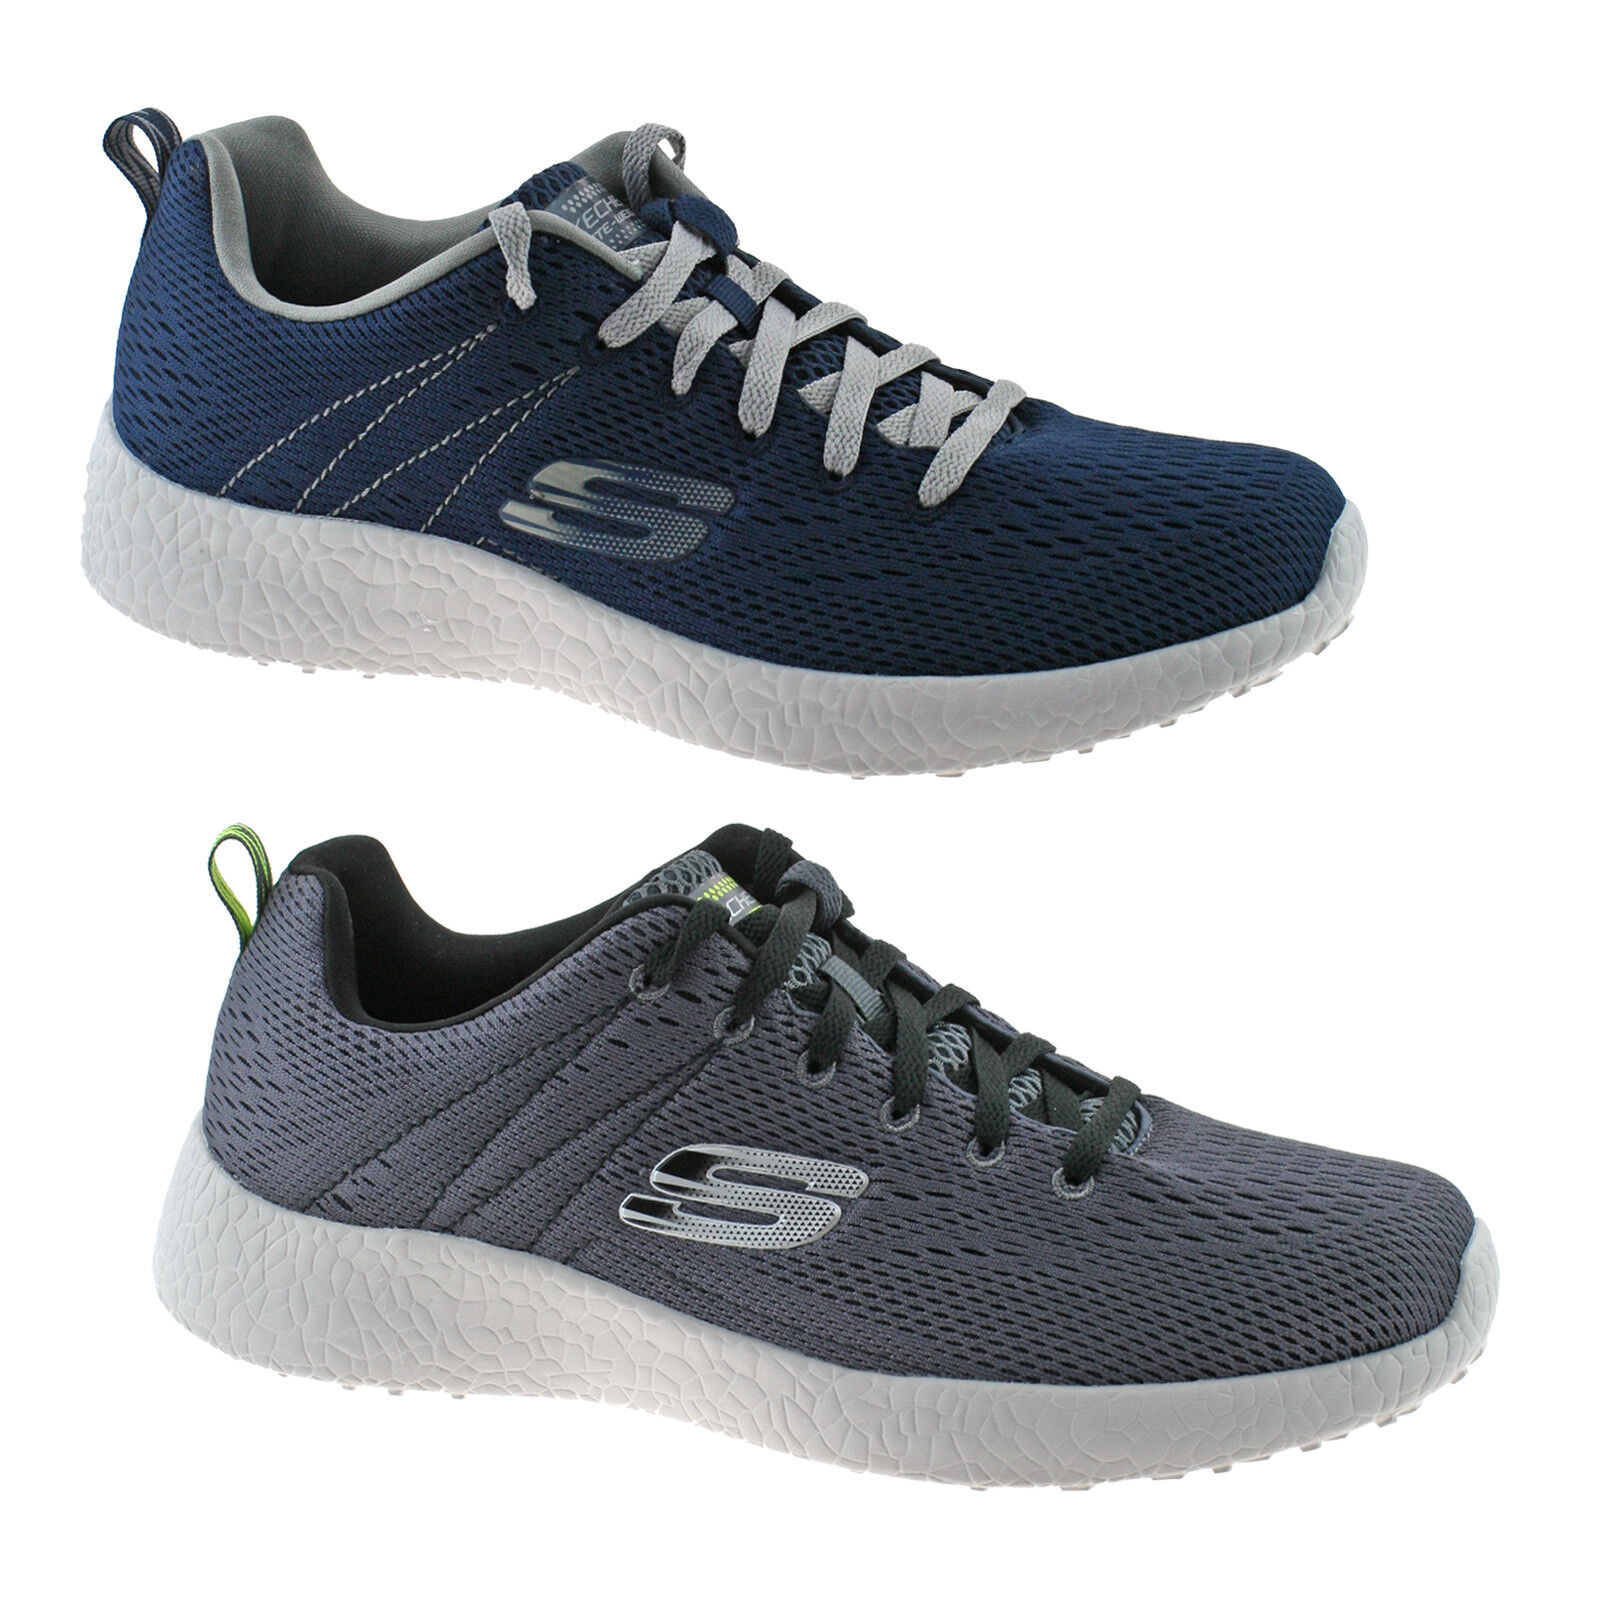 Zapatillas Skechers Burst Just In Time Hombre Caminata Foam